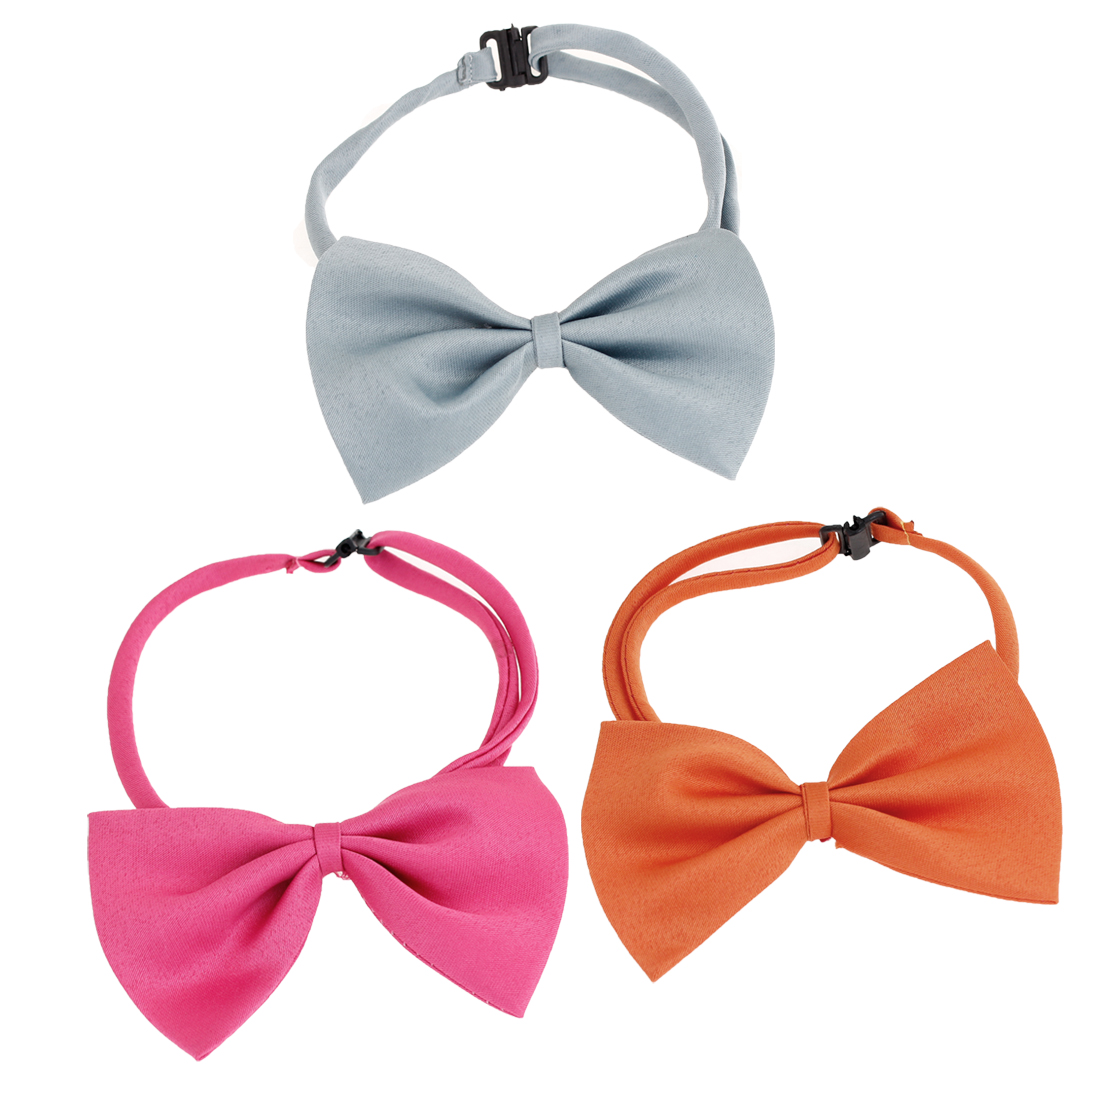 3 Pcs Fuchsia Orange Gray Adjustable Dog Pet Puppy Grooming Necktie Bowtie